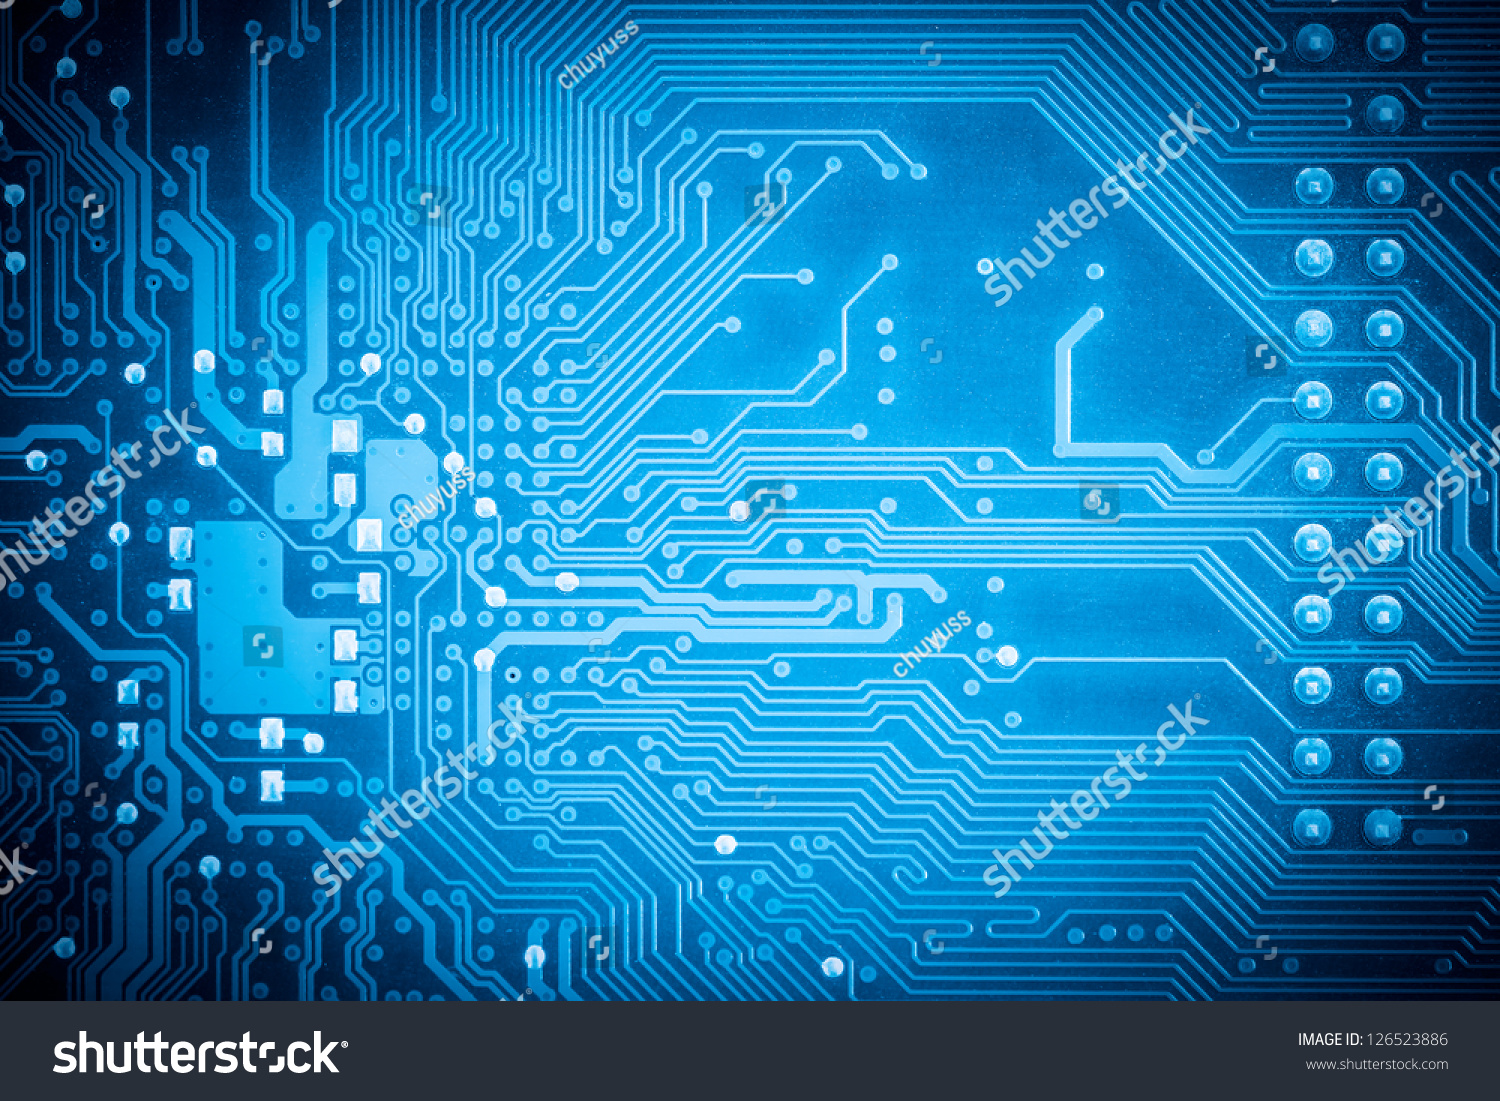 Motherboard Blue Circuits Circuit Board Computer Wallpaper Background